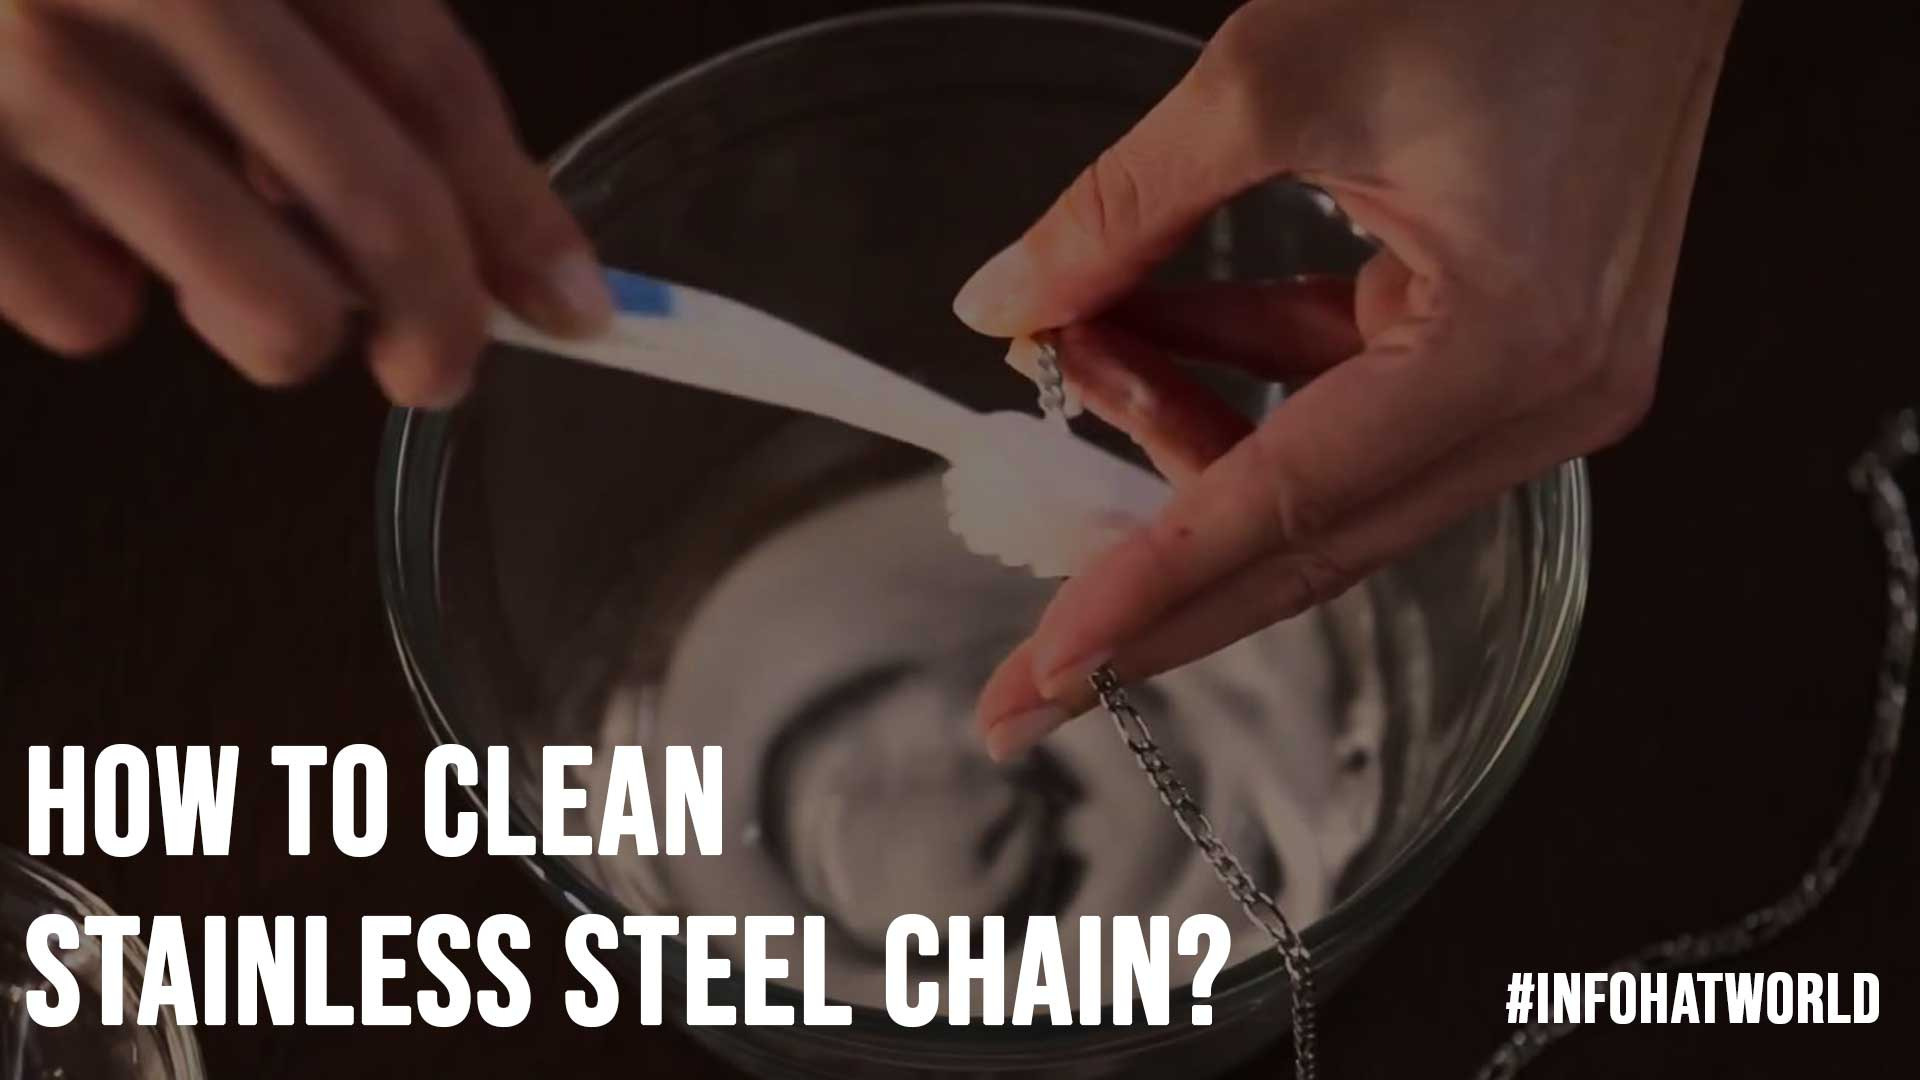 How to Clean Stainless Steel Chain